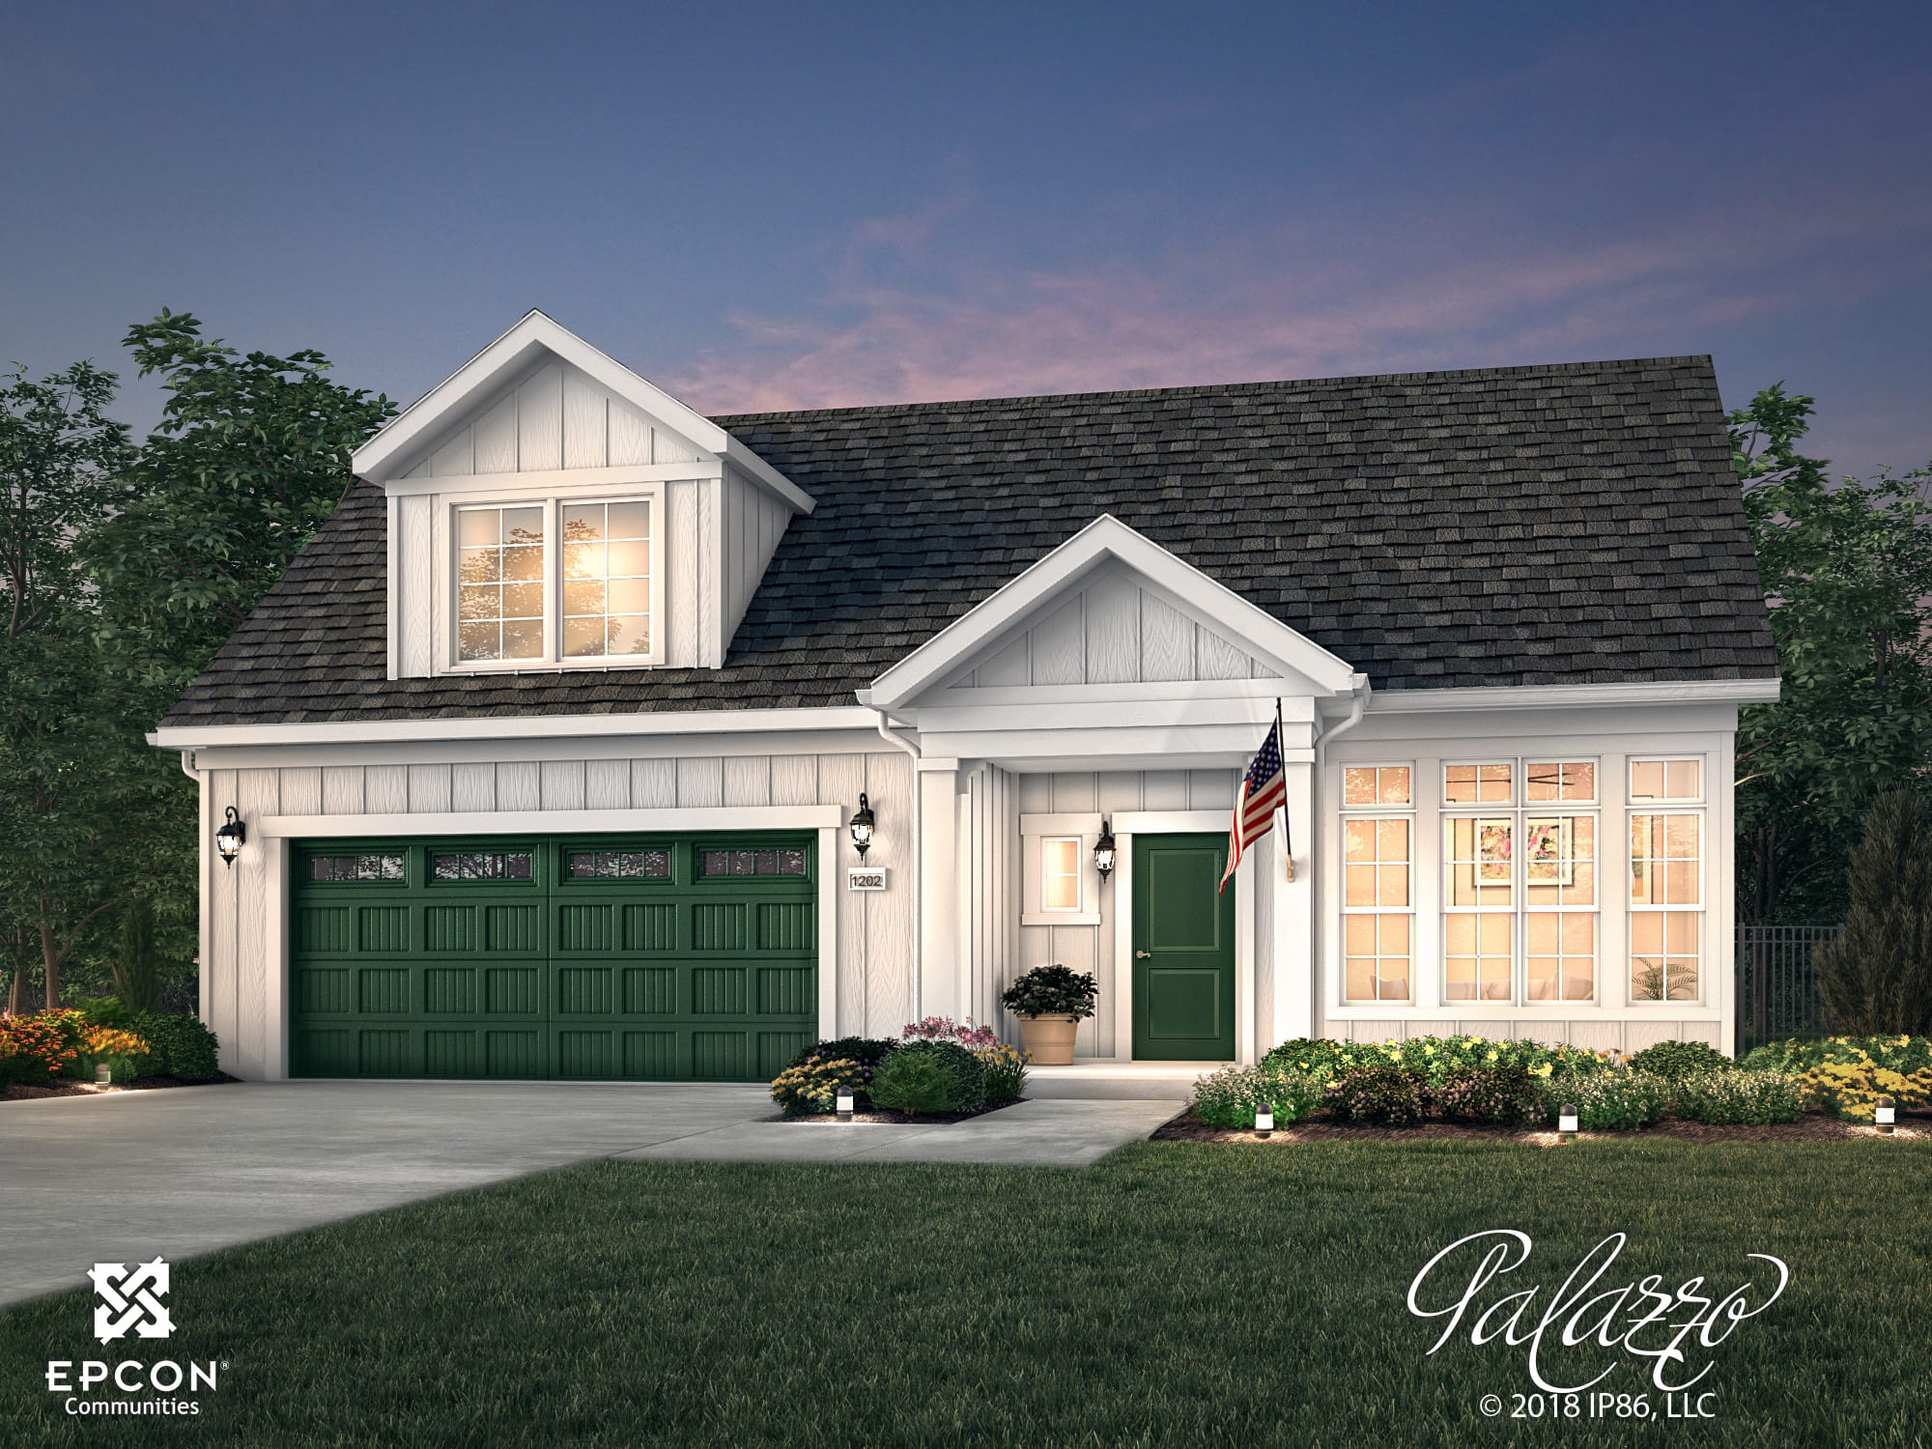 Epcon Palazzo Exterior Rendering Summer Cottage